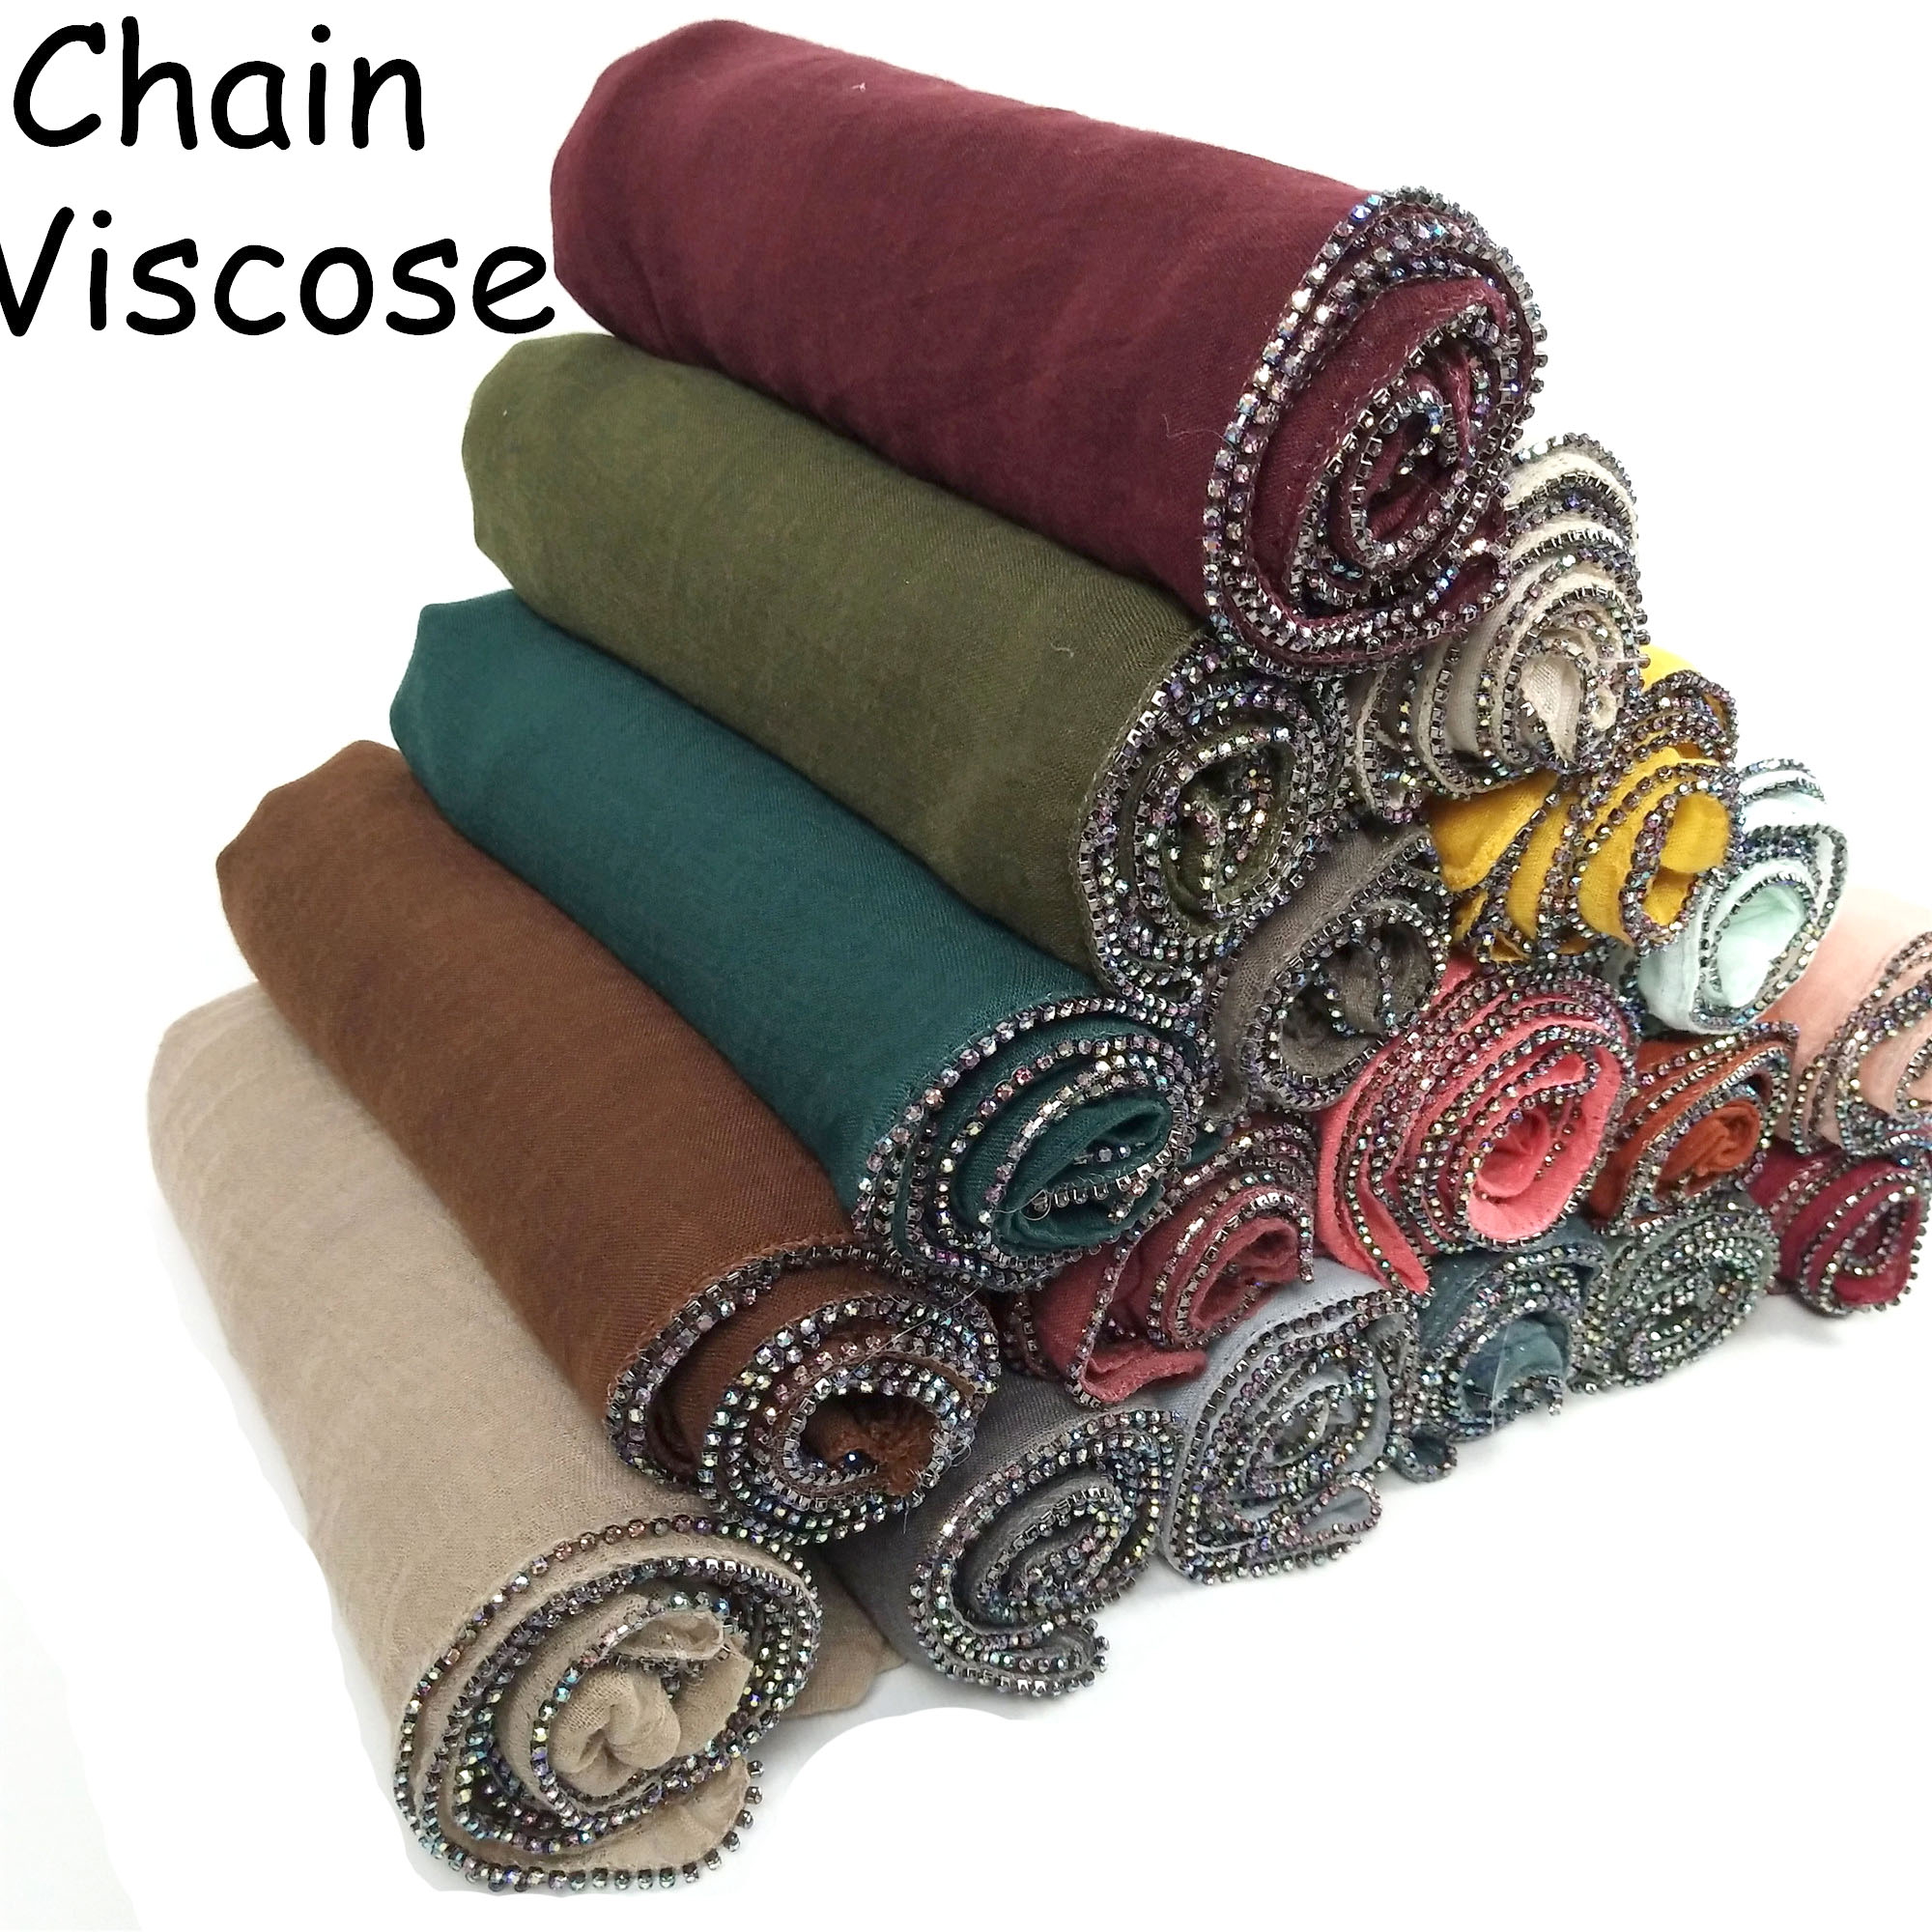 K12  New Stock Gold Beads Muslim Cotton Scarves Chain Plain Wraps Shawls Maxi Fashion Headband Long Scarves 180*80cm